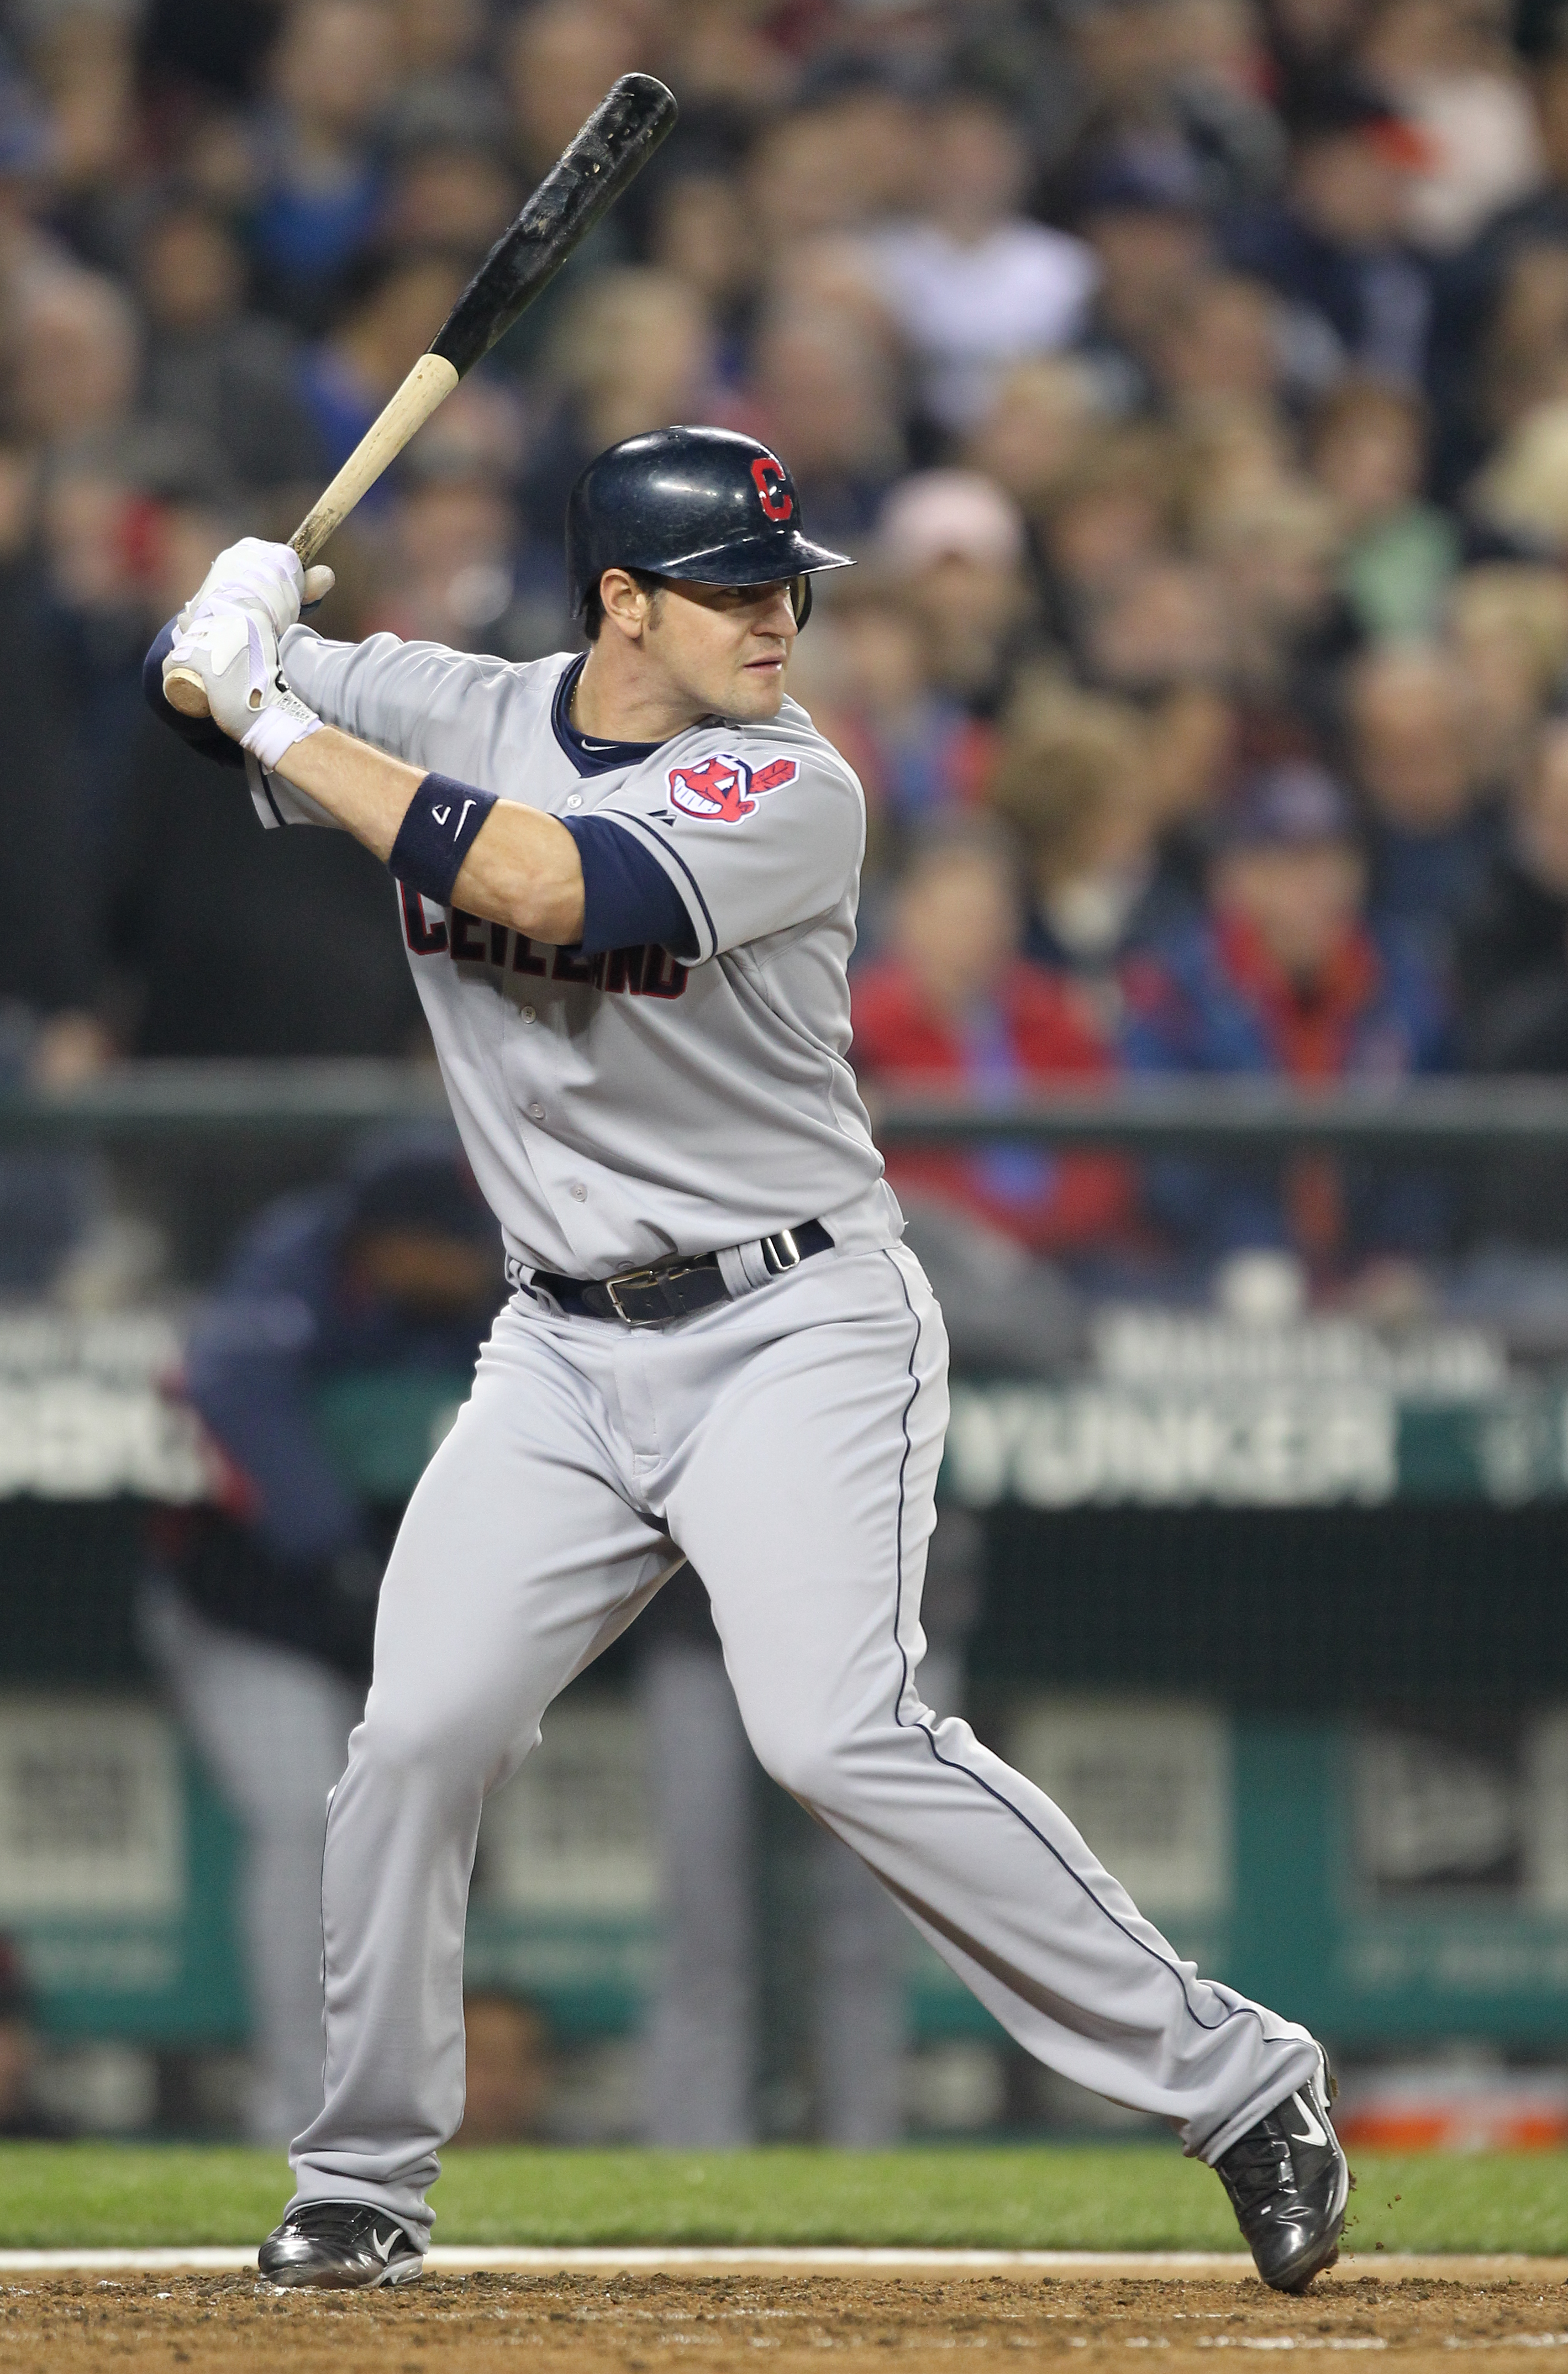 SEATTLE, WA - APRIL 08:  Matt LaPorta #7 of the Cleveland Indians bats against the Seattle Mariners during the Mariners' home opener at Safeco Field on April 8, 2011 in Seattle, Washington. (Photo by Otto Greule Jr/Getty Images)